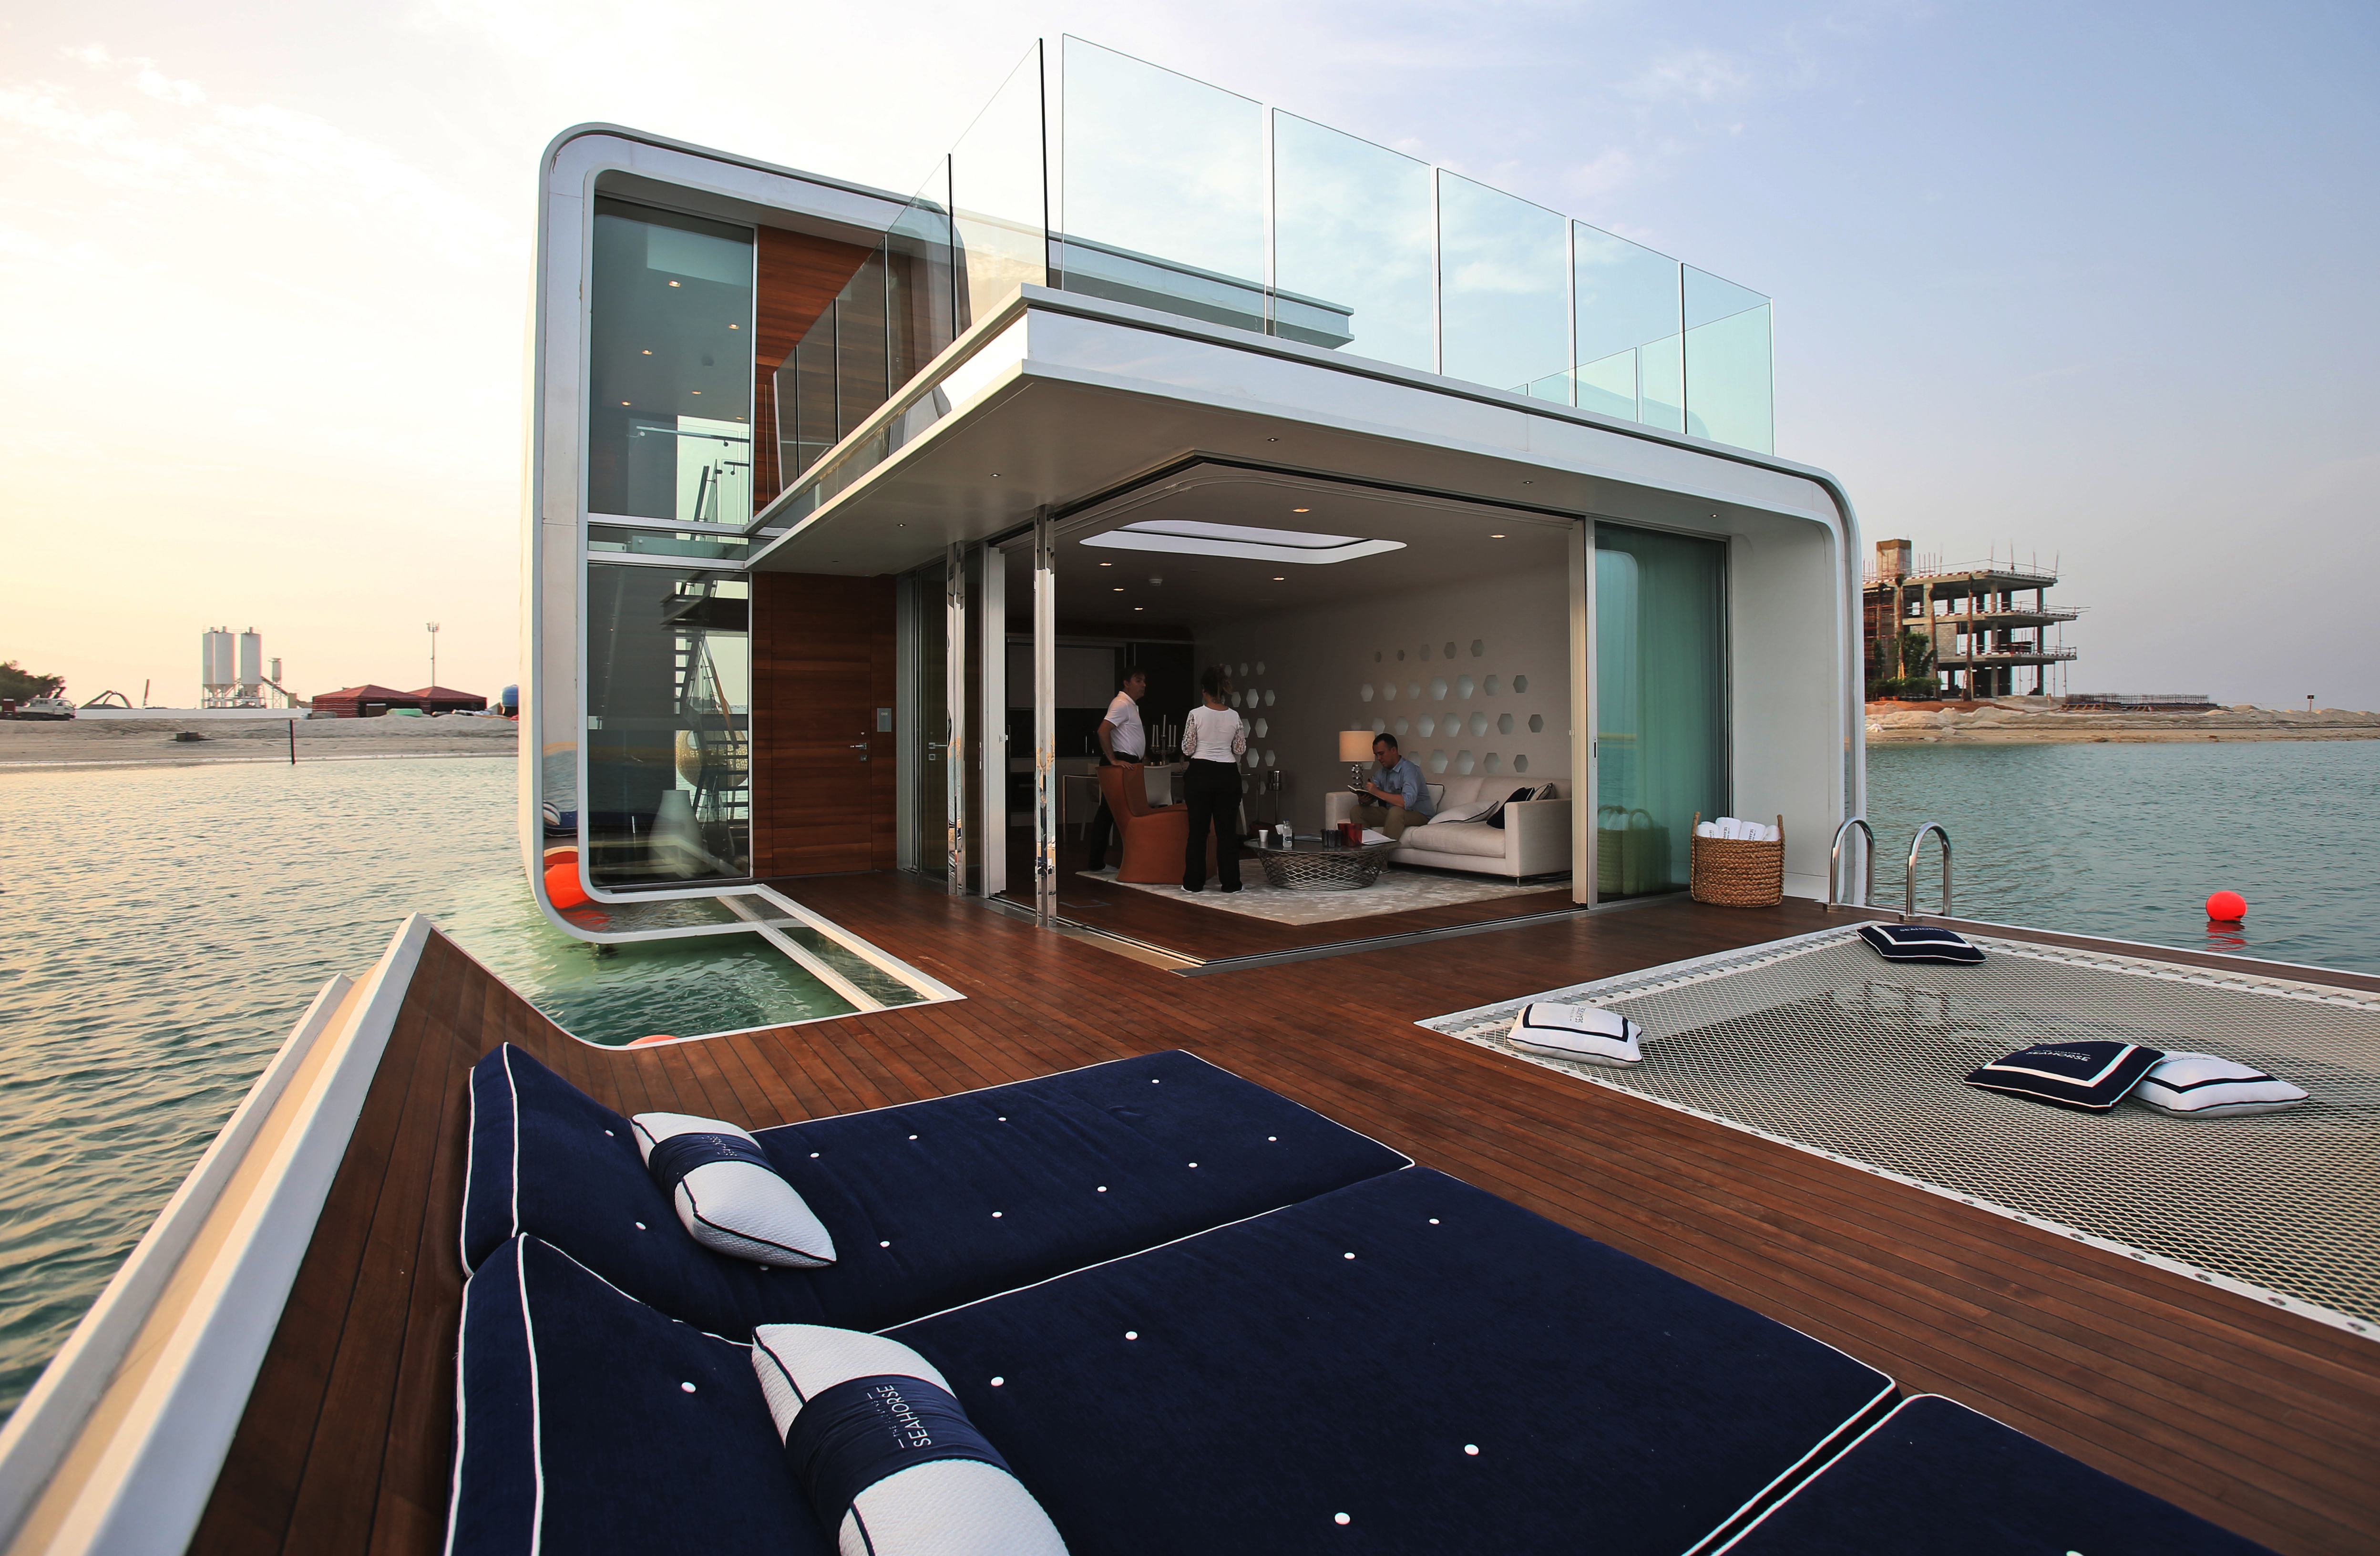 Floating home marks return to dubai 39 s man made world islands wtop - The floating homes of dubai luxury redefined ...